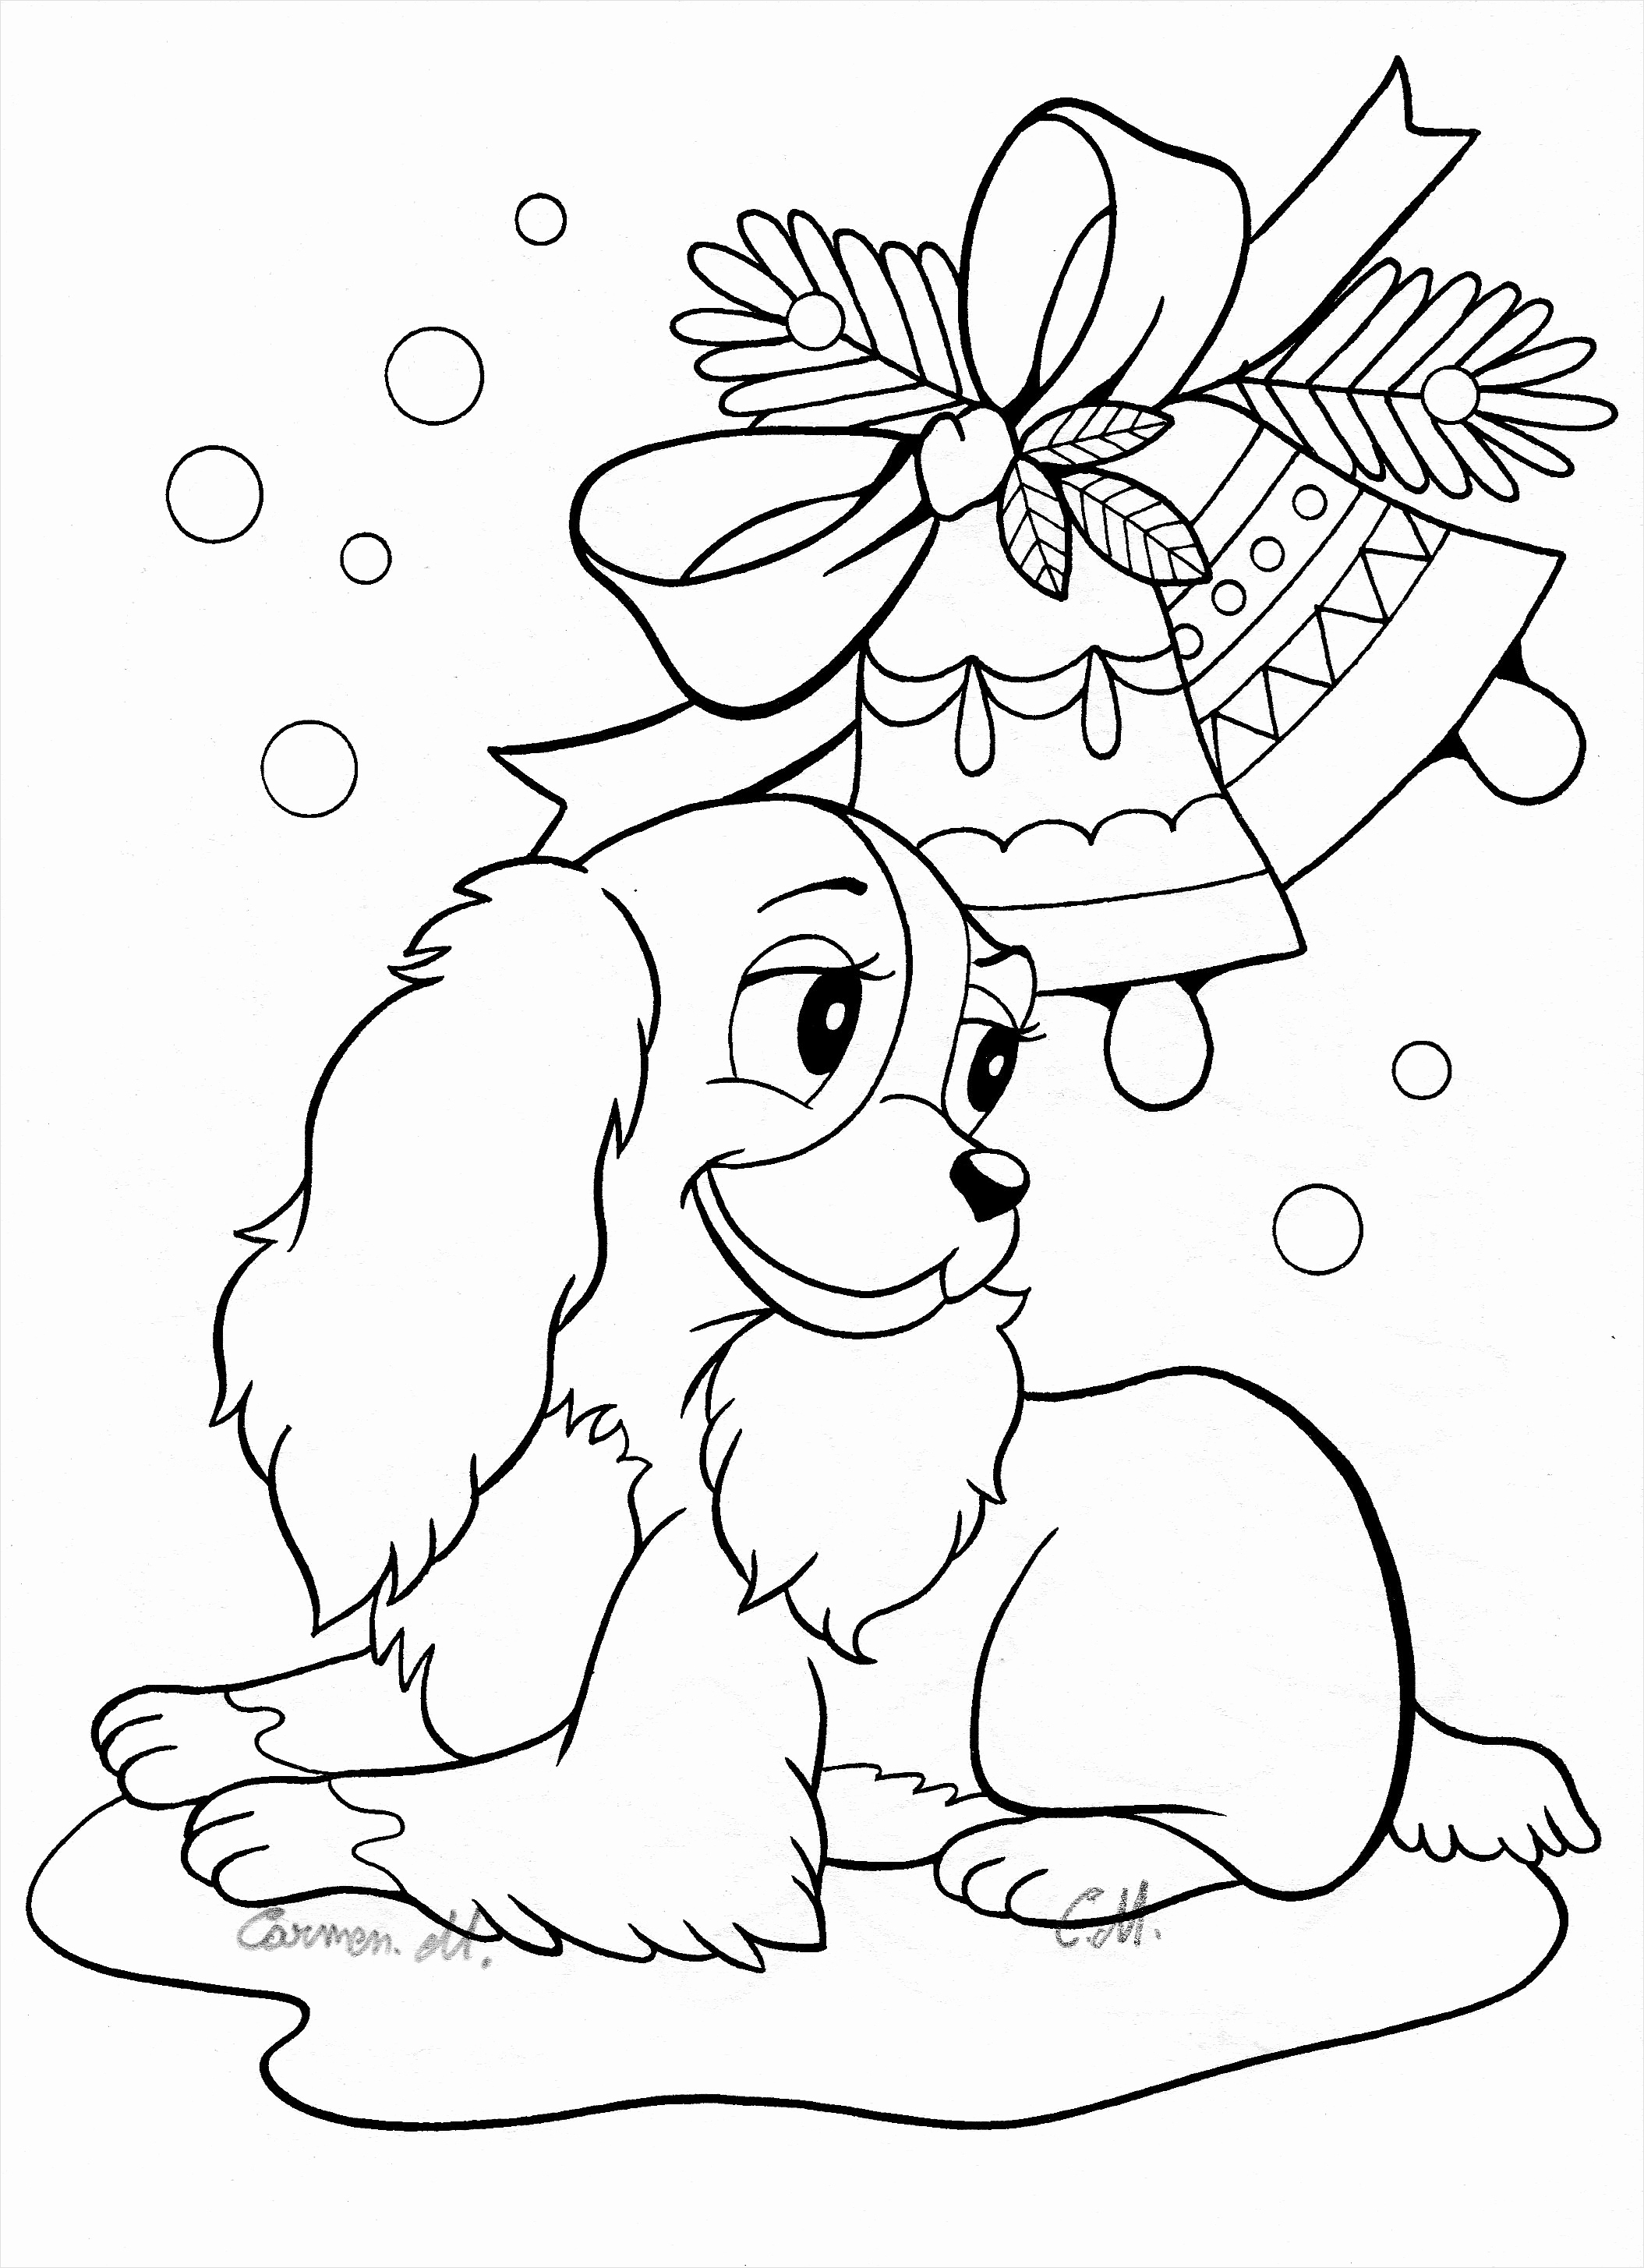 Water Cycle Coloring Page Water Cycle Coloring Pages Luxury Photography Cute Coloring Pages To